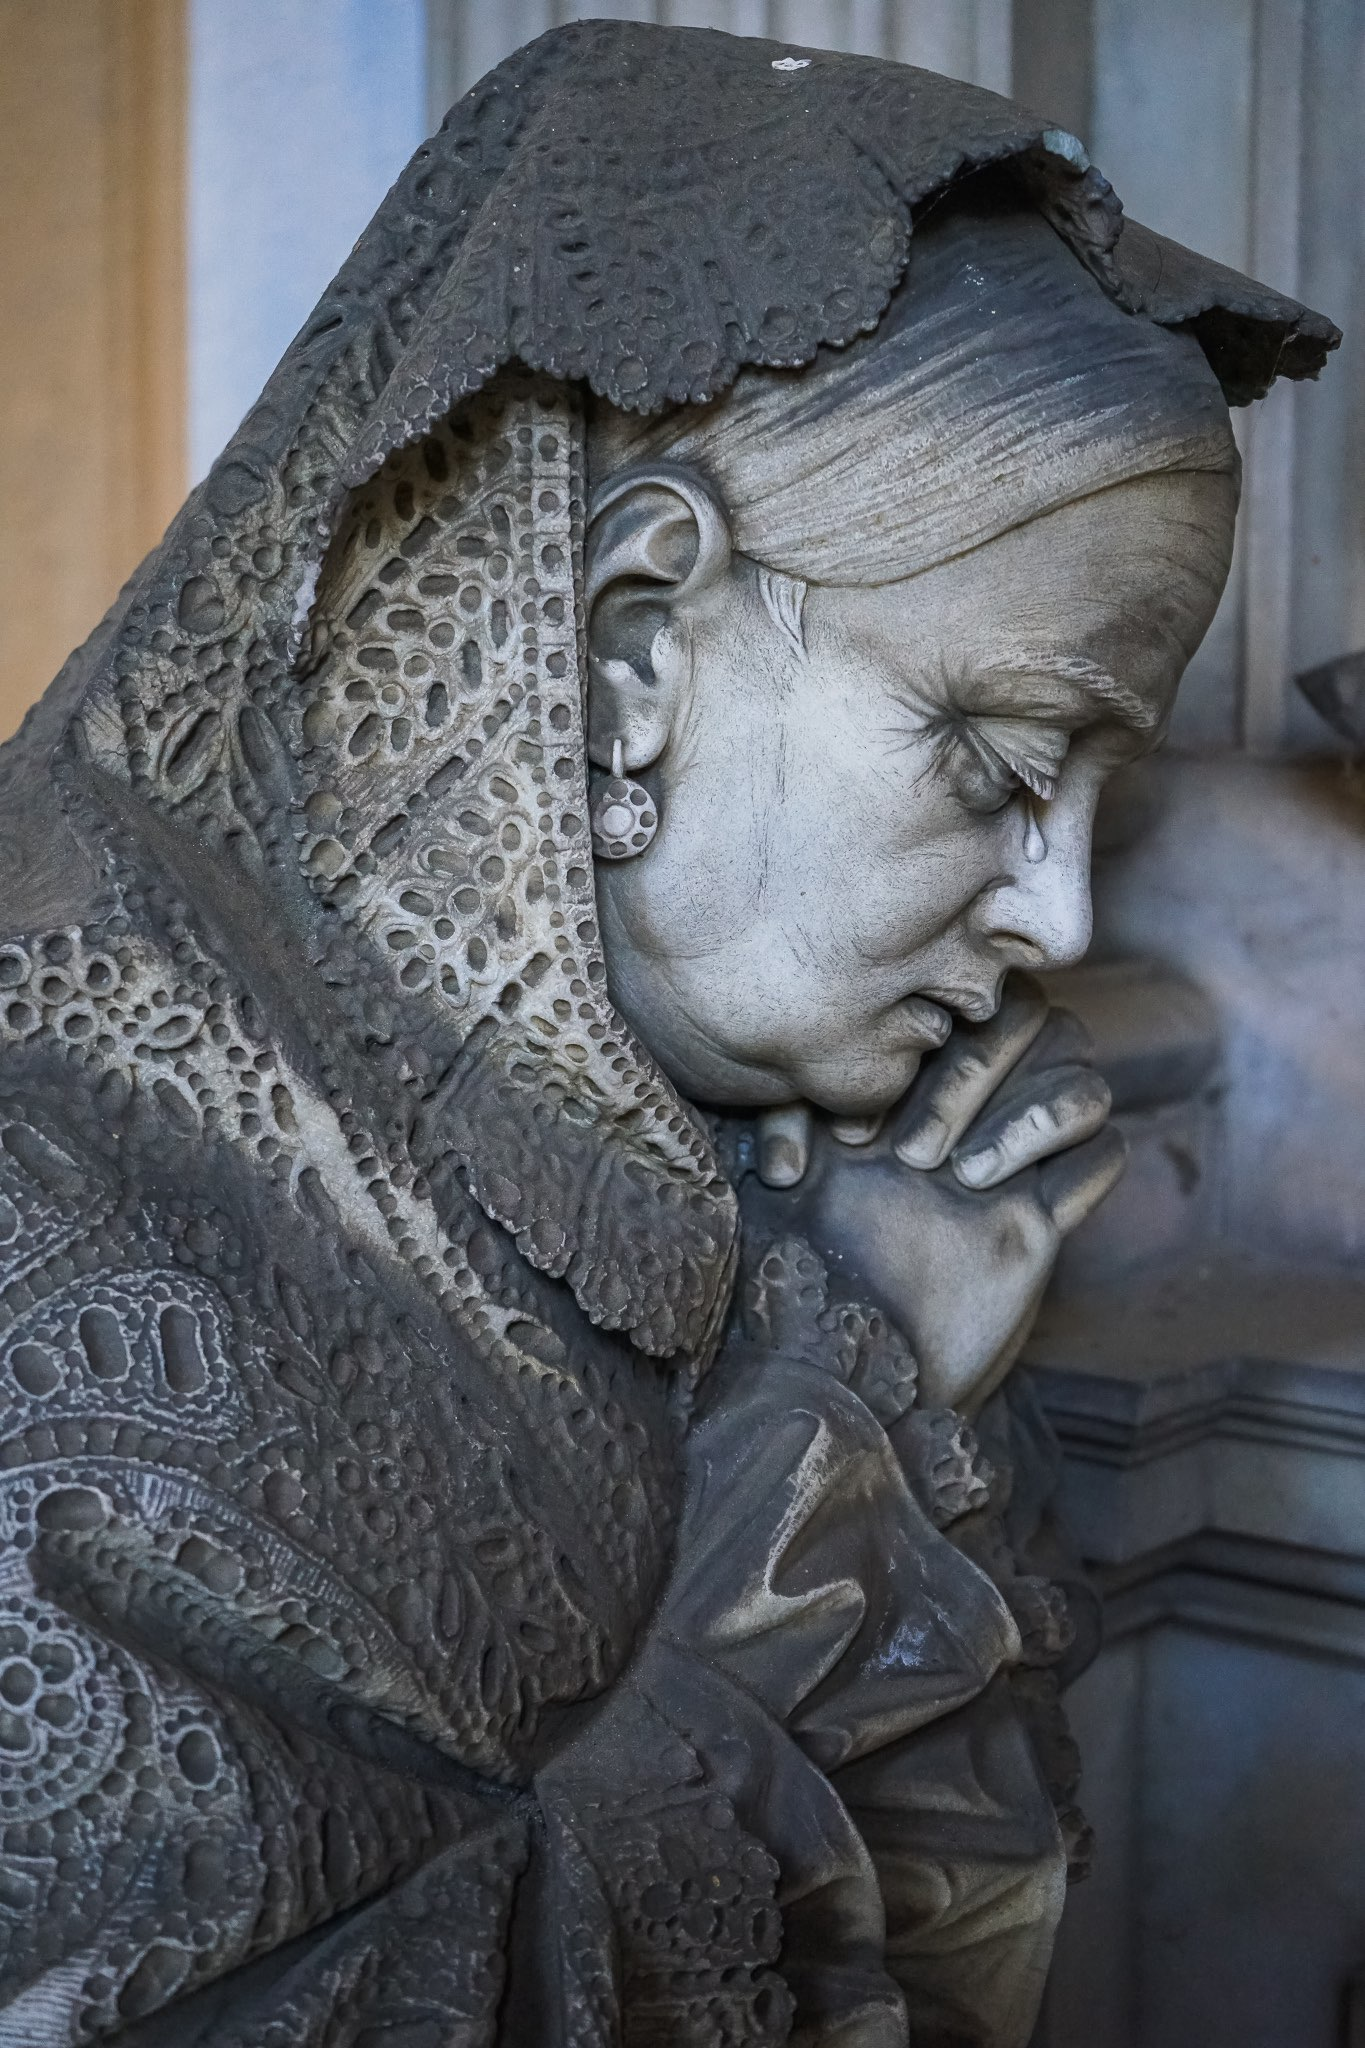 The exquisite statues at the Staglieno Cemetery in Genoa